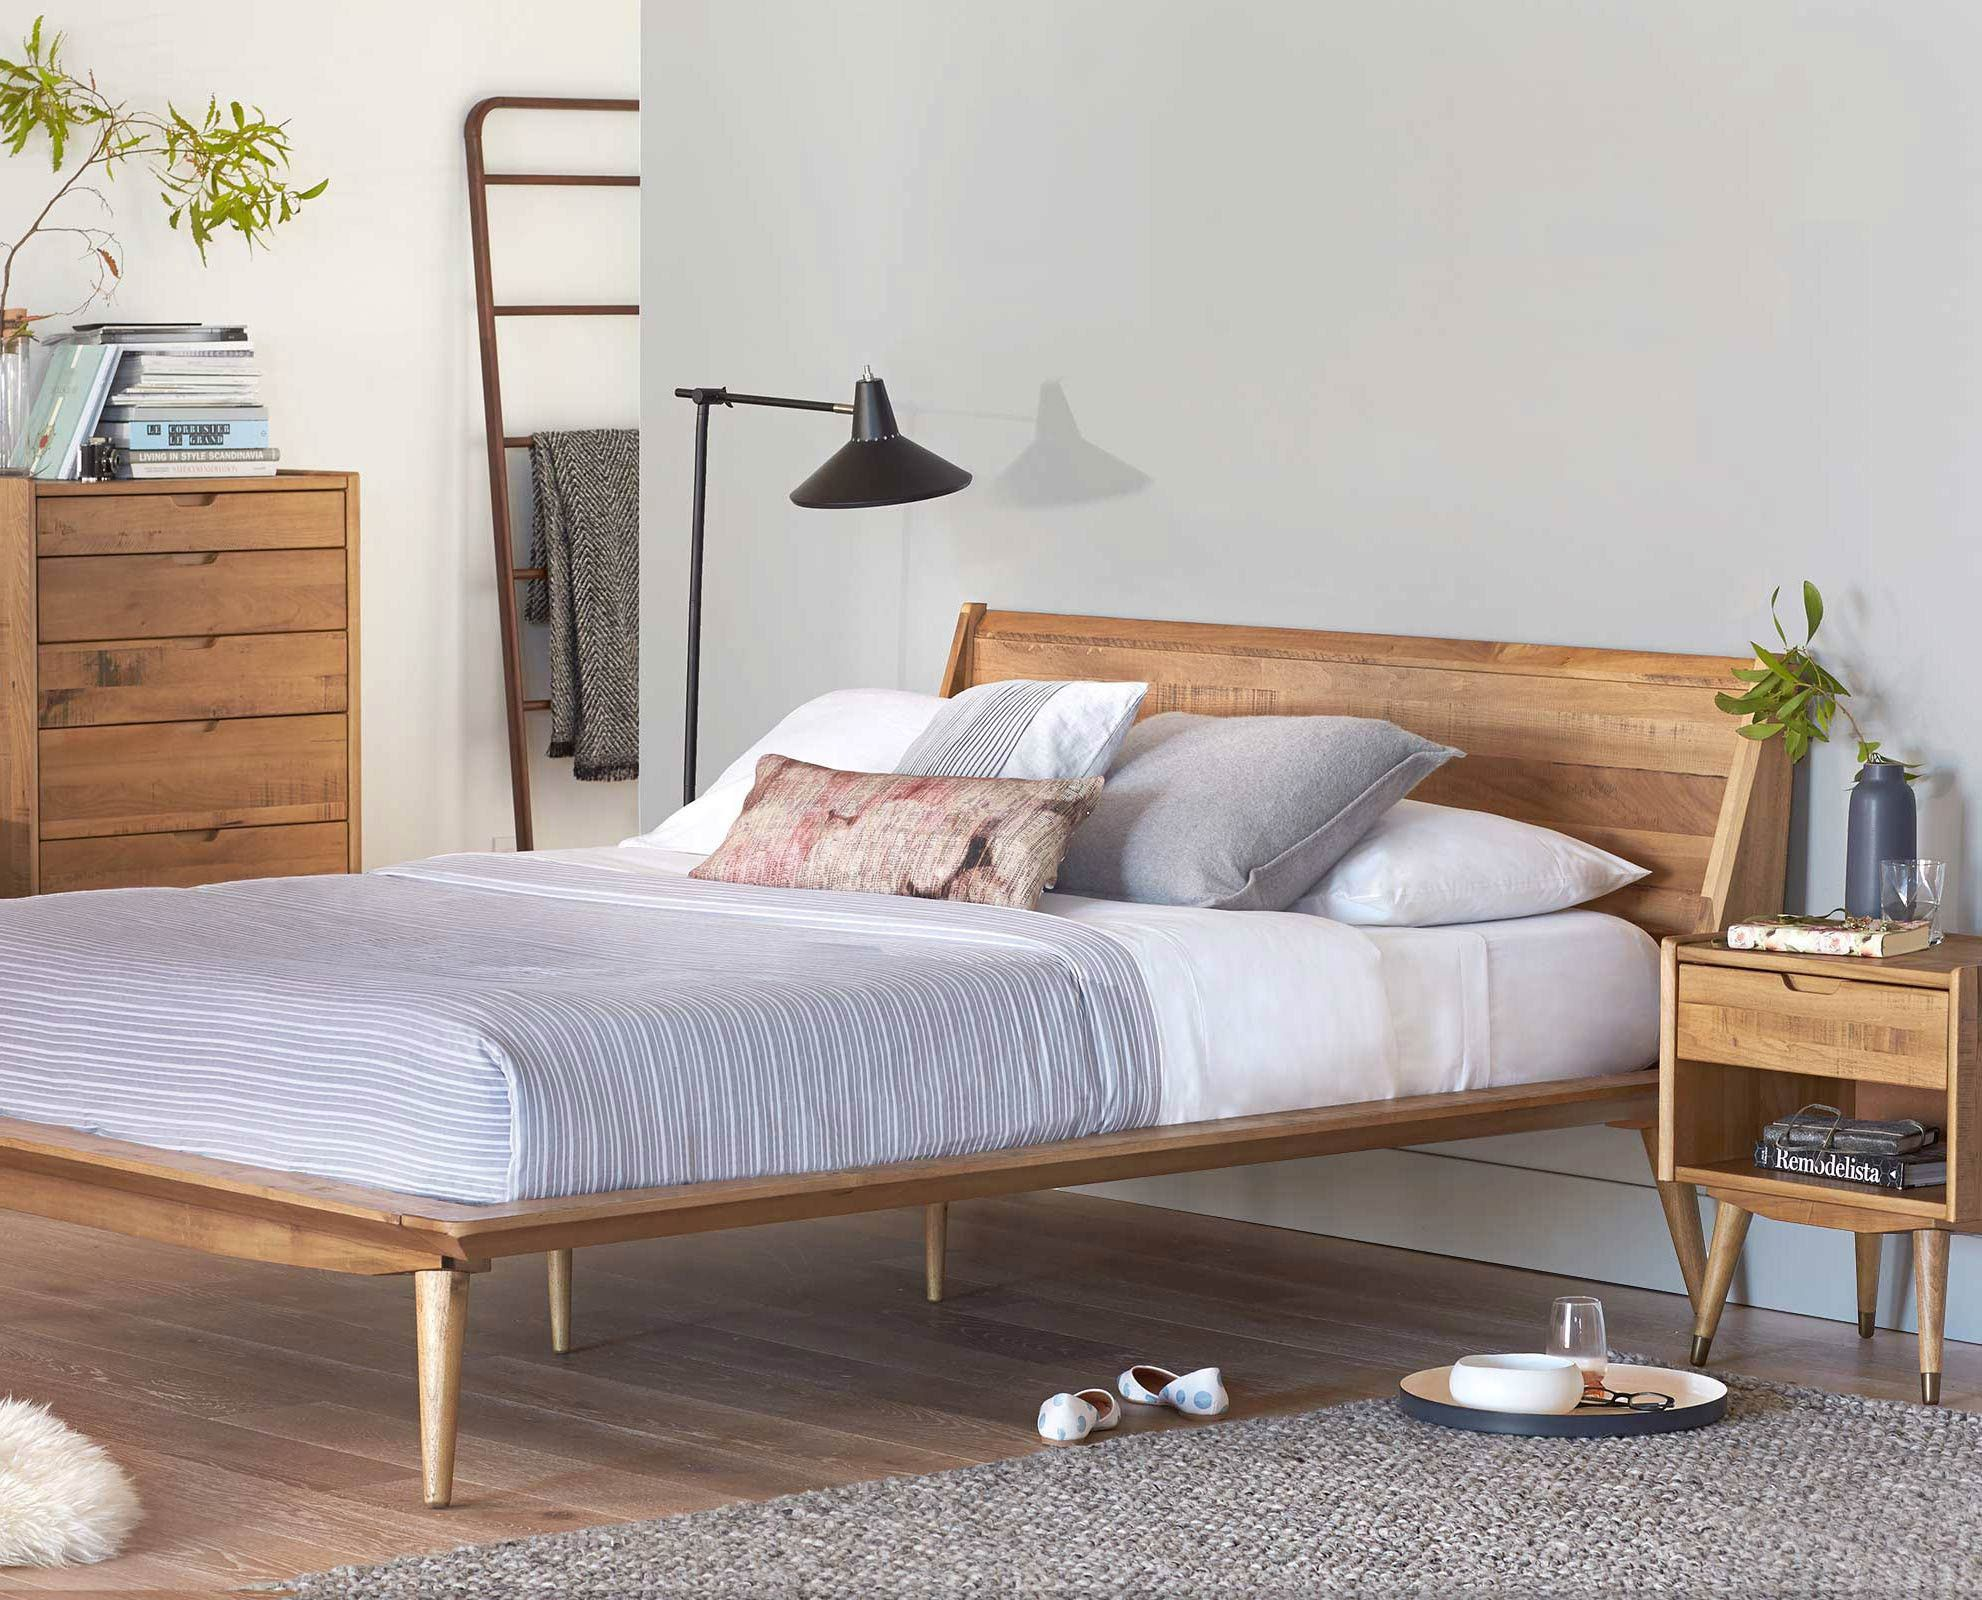 Wooden Scandi bed and furniture - Scandinavian bedroom